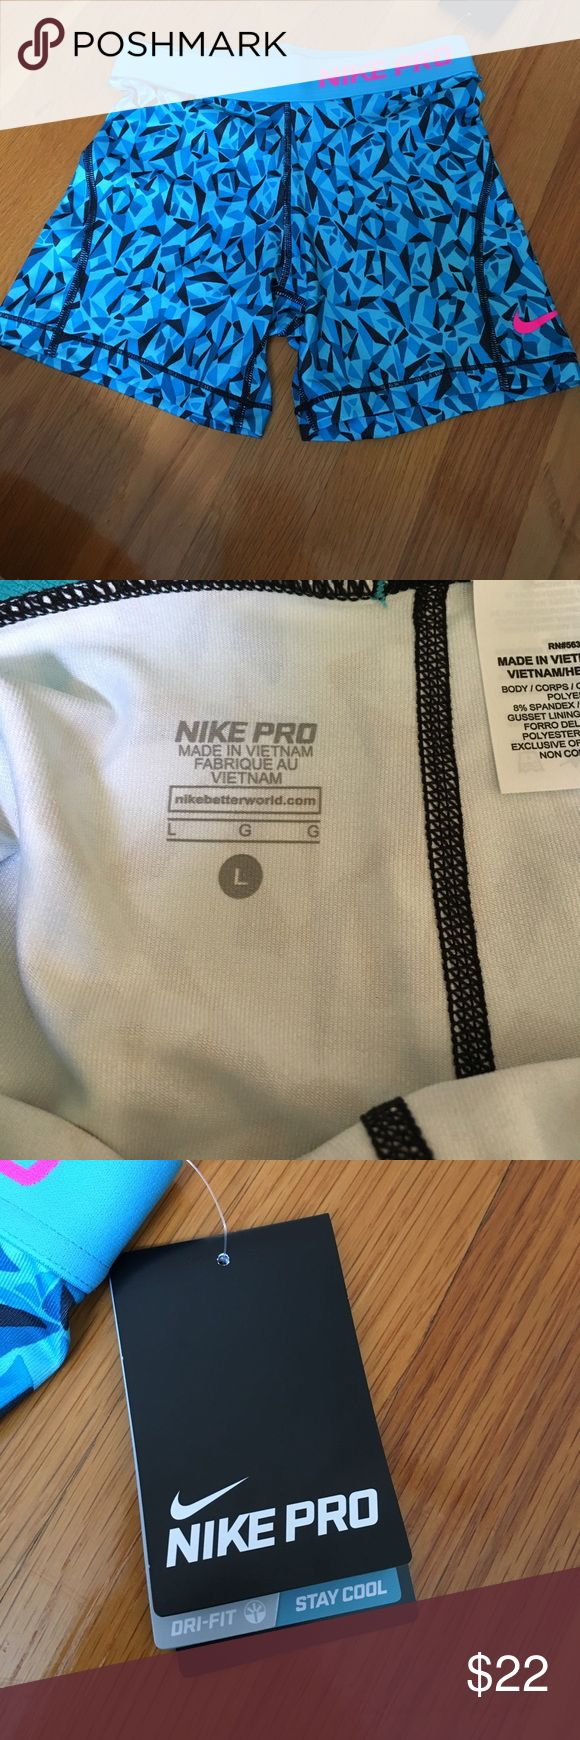 Blue nike pro spandex Blue nike pro spandex, girls large - fits as a small/extra small for ladies (00-2)  new with tags Nike Bottoms Shorts